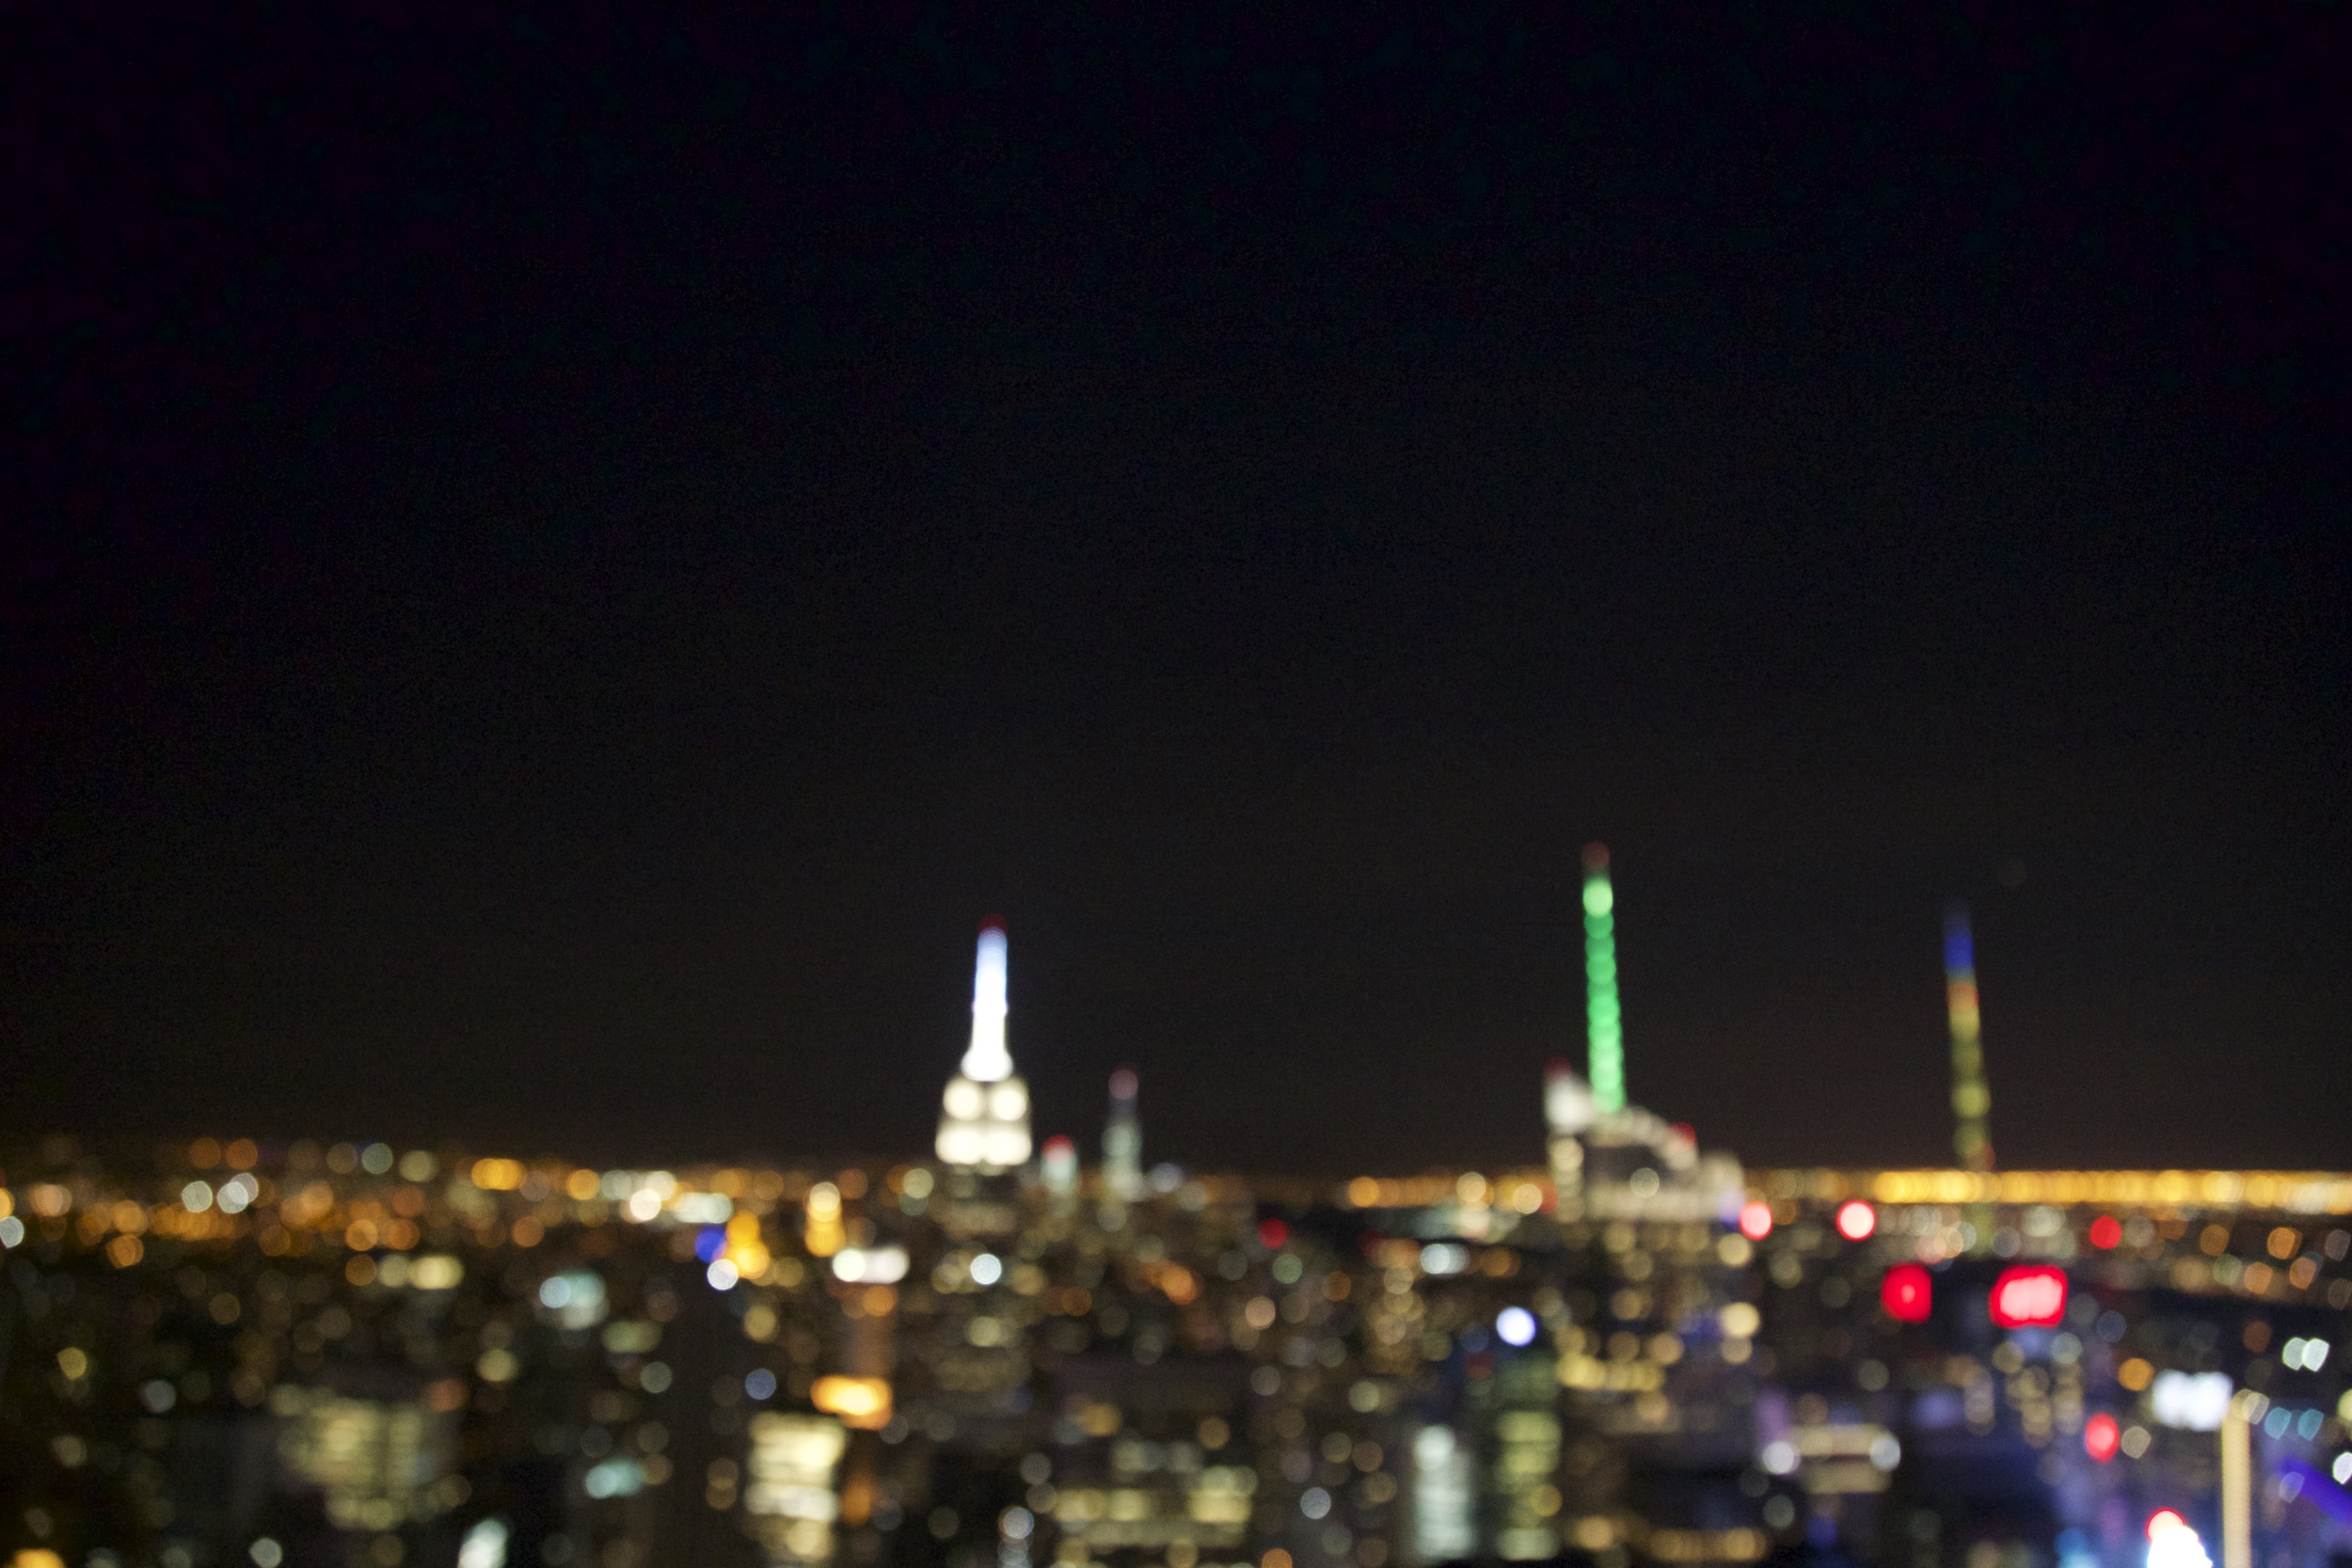 """This is my first blog post, and for those who can't tell, the photo above is of the New York skyline by night. This was my first time going to the """"Top of the Rock"""" and i shouldn't have done it at night, for the view would've been better during the day.I will have more opportunities though because New York is my second most visited city - after DC, which is where I live.As i travel back and fourth between the two cities, you will see photos of people I meet and the places I go within the cities that I deem worthy of photographing. I use a Canon 5D Mark iii with a kit lens (24-105mm f/4) and I am saving up for better equipment. I have my sights set on a 35mm f/1.4 or something of the sort for portraits and landscapes. Booked at f/4 is very minimal, and I'm hoping to be able to increase the effect in the future."""